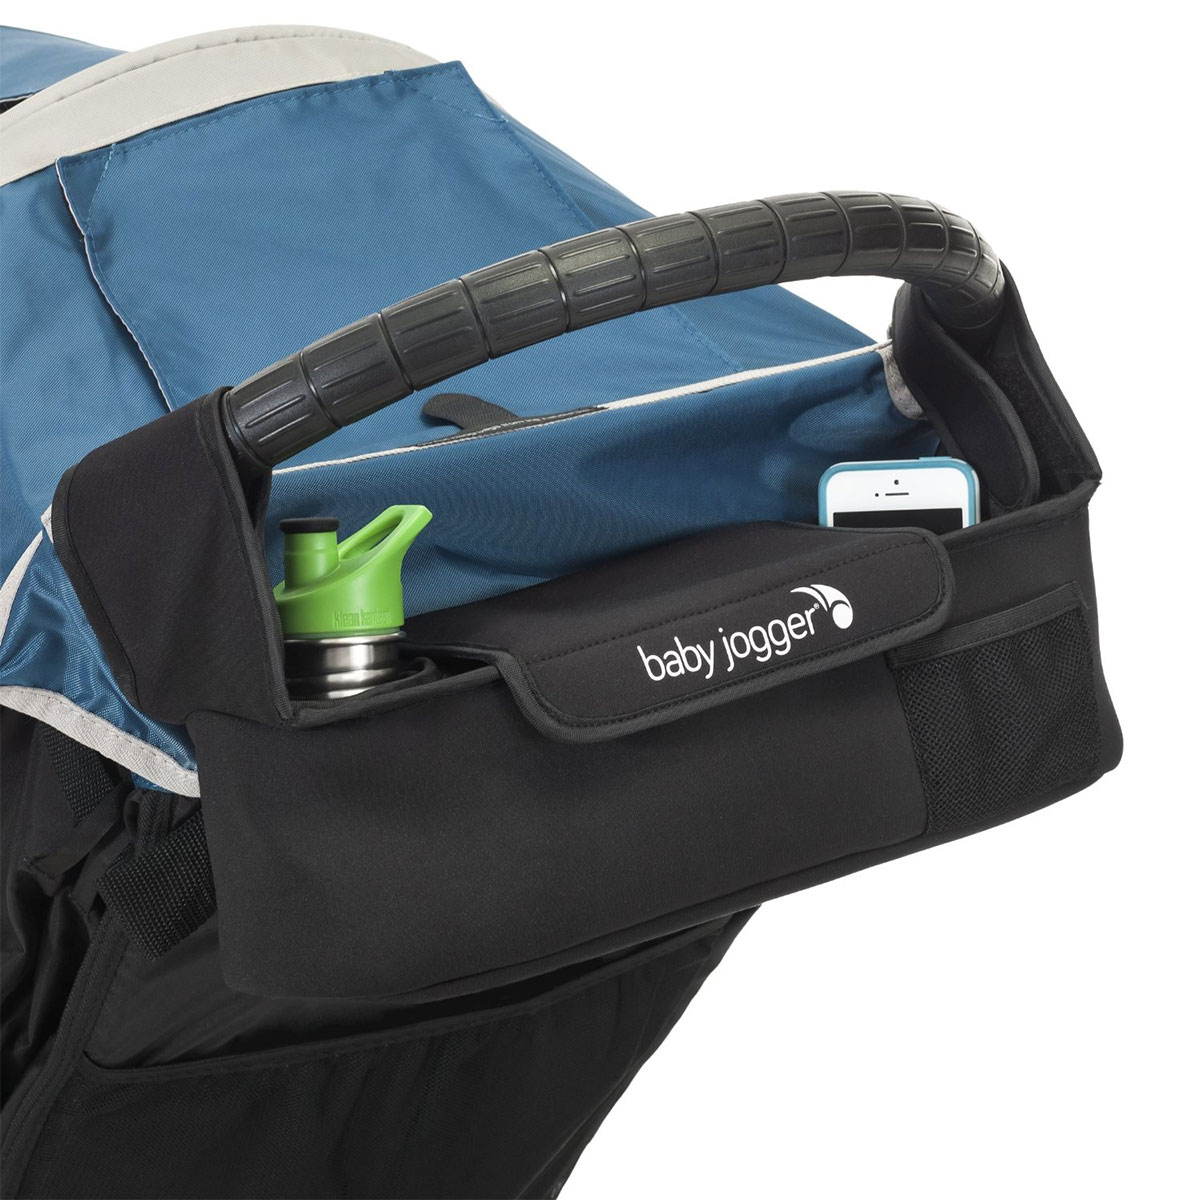 Baby CityJogger Cup Holder Pouch for Universal Stroller Insulated Storage Black